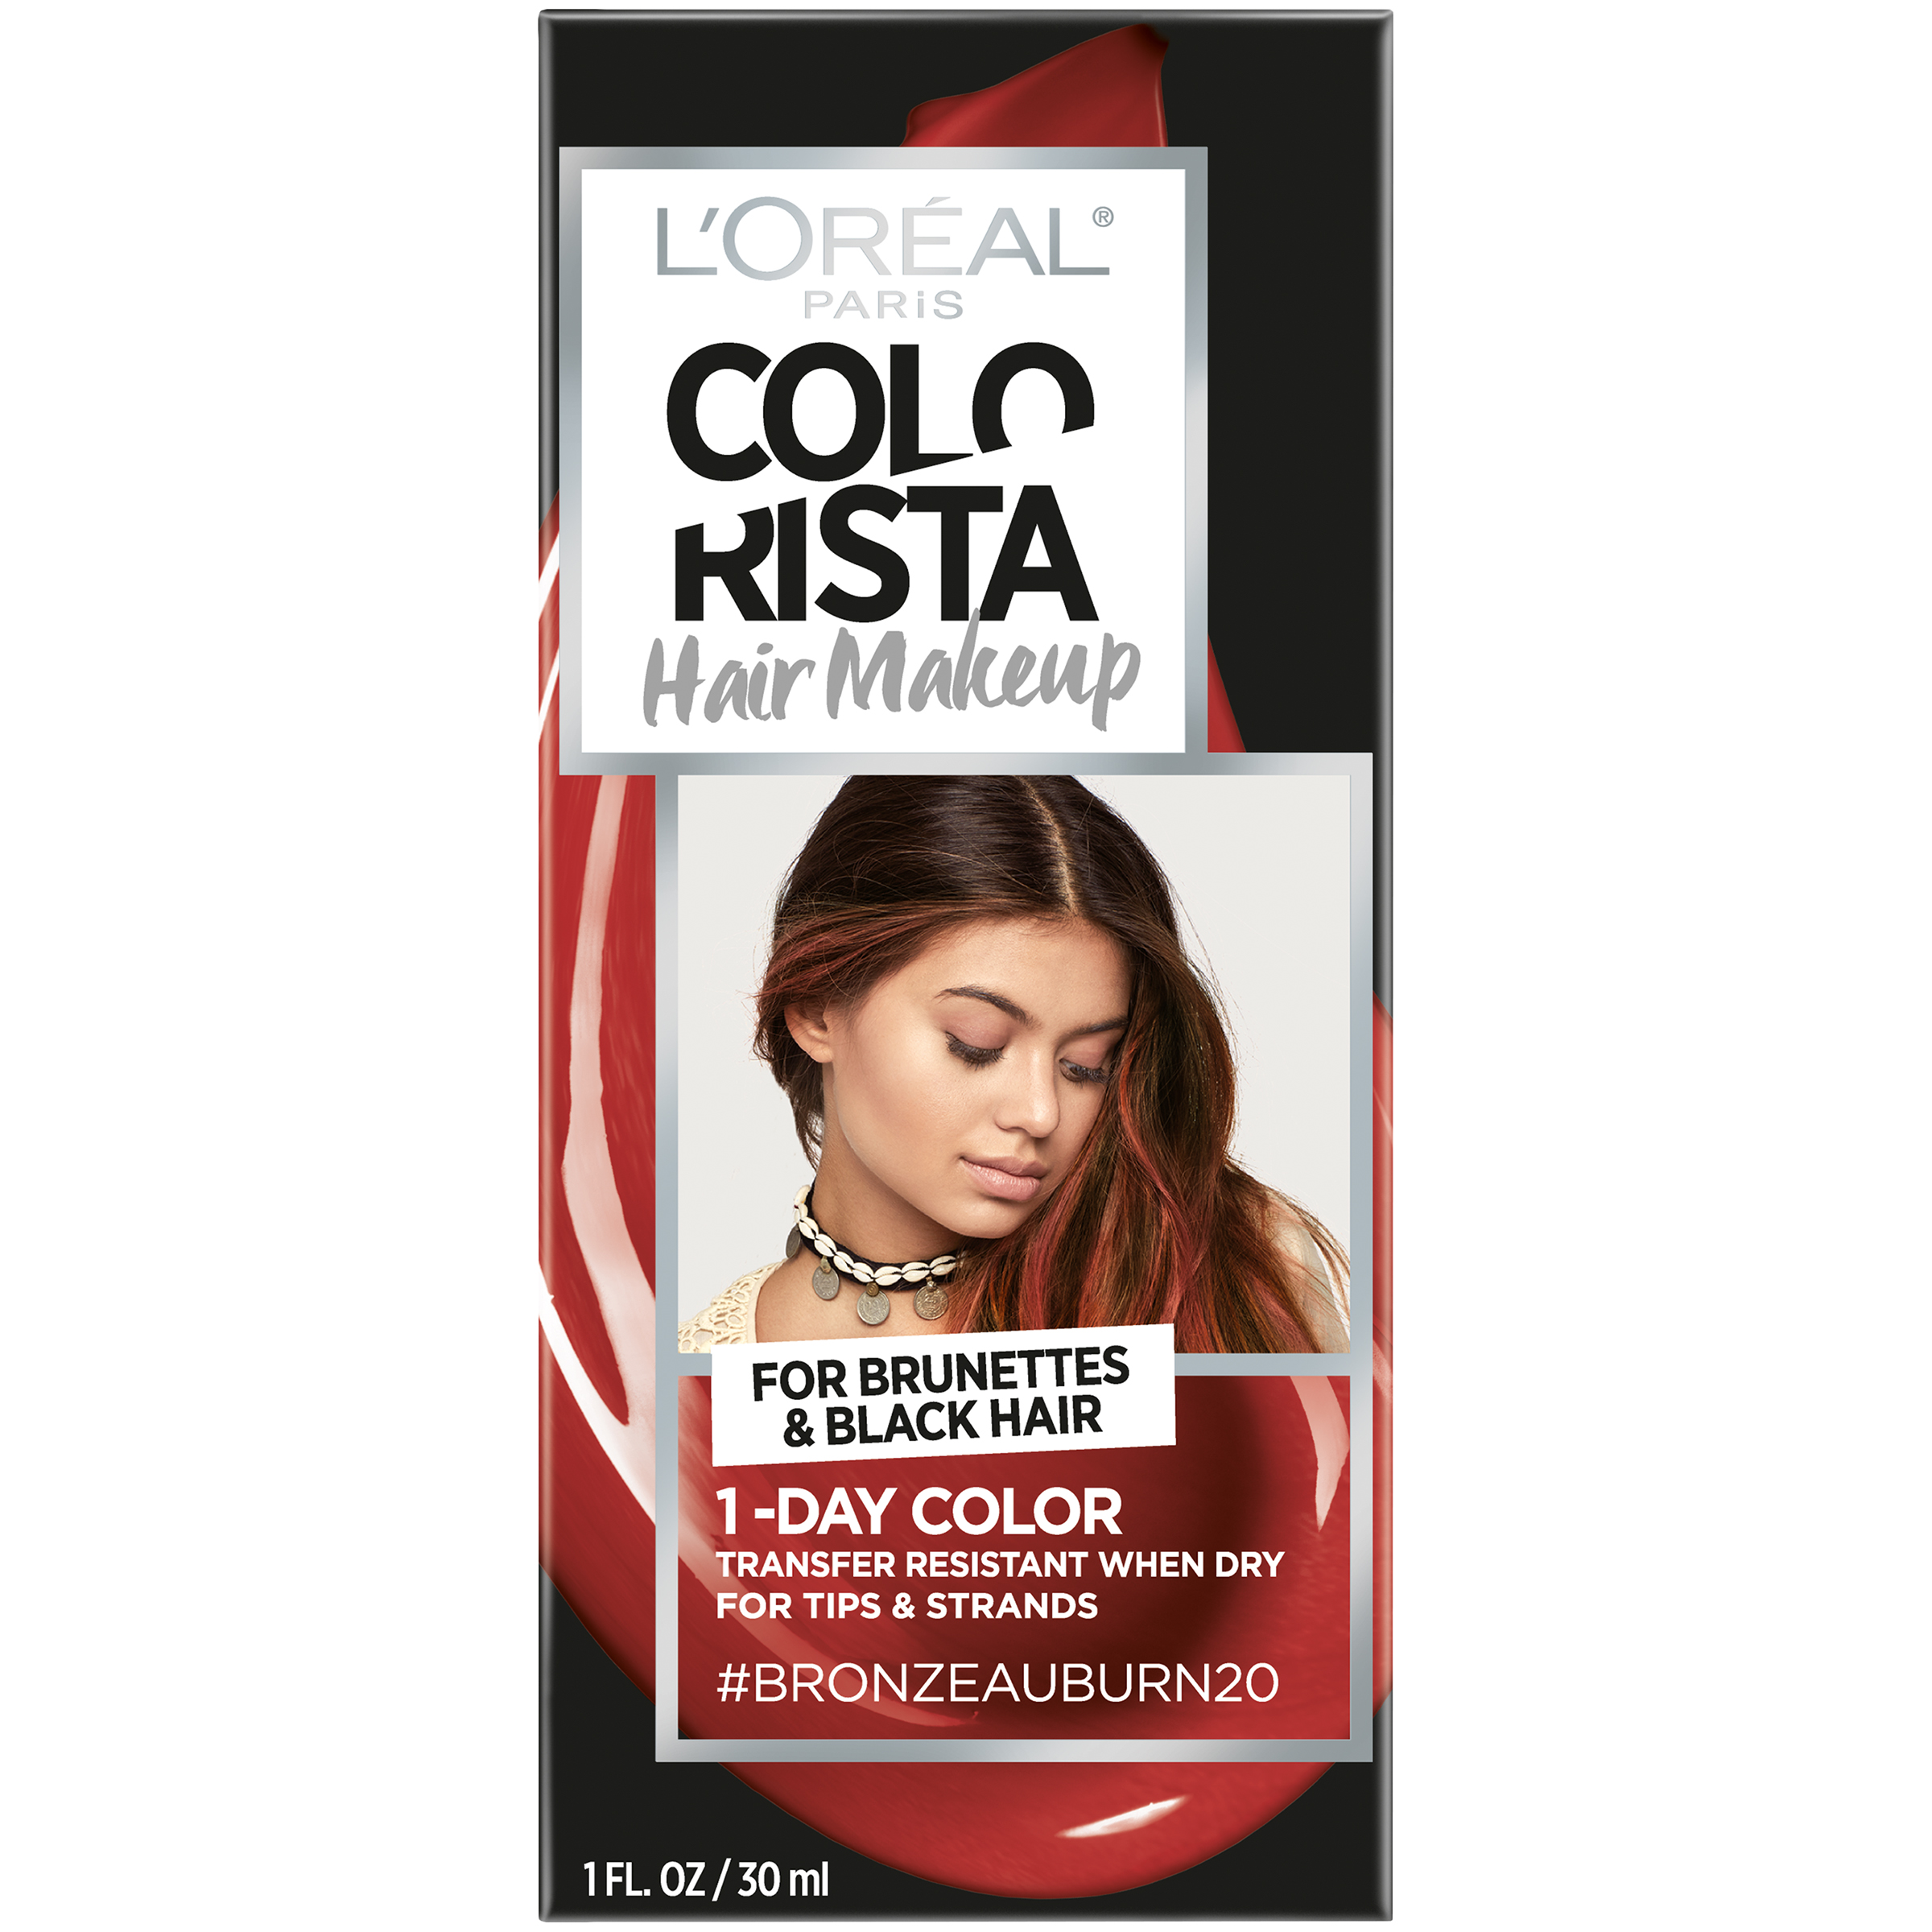 L'Oreal Paris Colorista Hair Makeup 1-Day Hair Color, Green70 (for brunettes), 1 fl. oz.